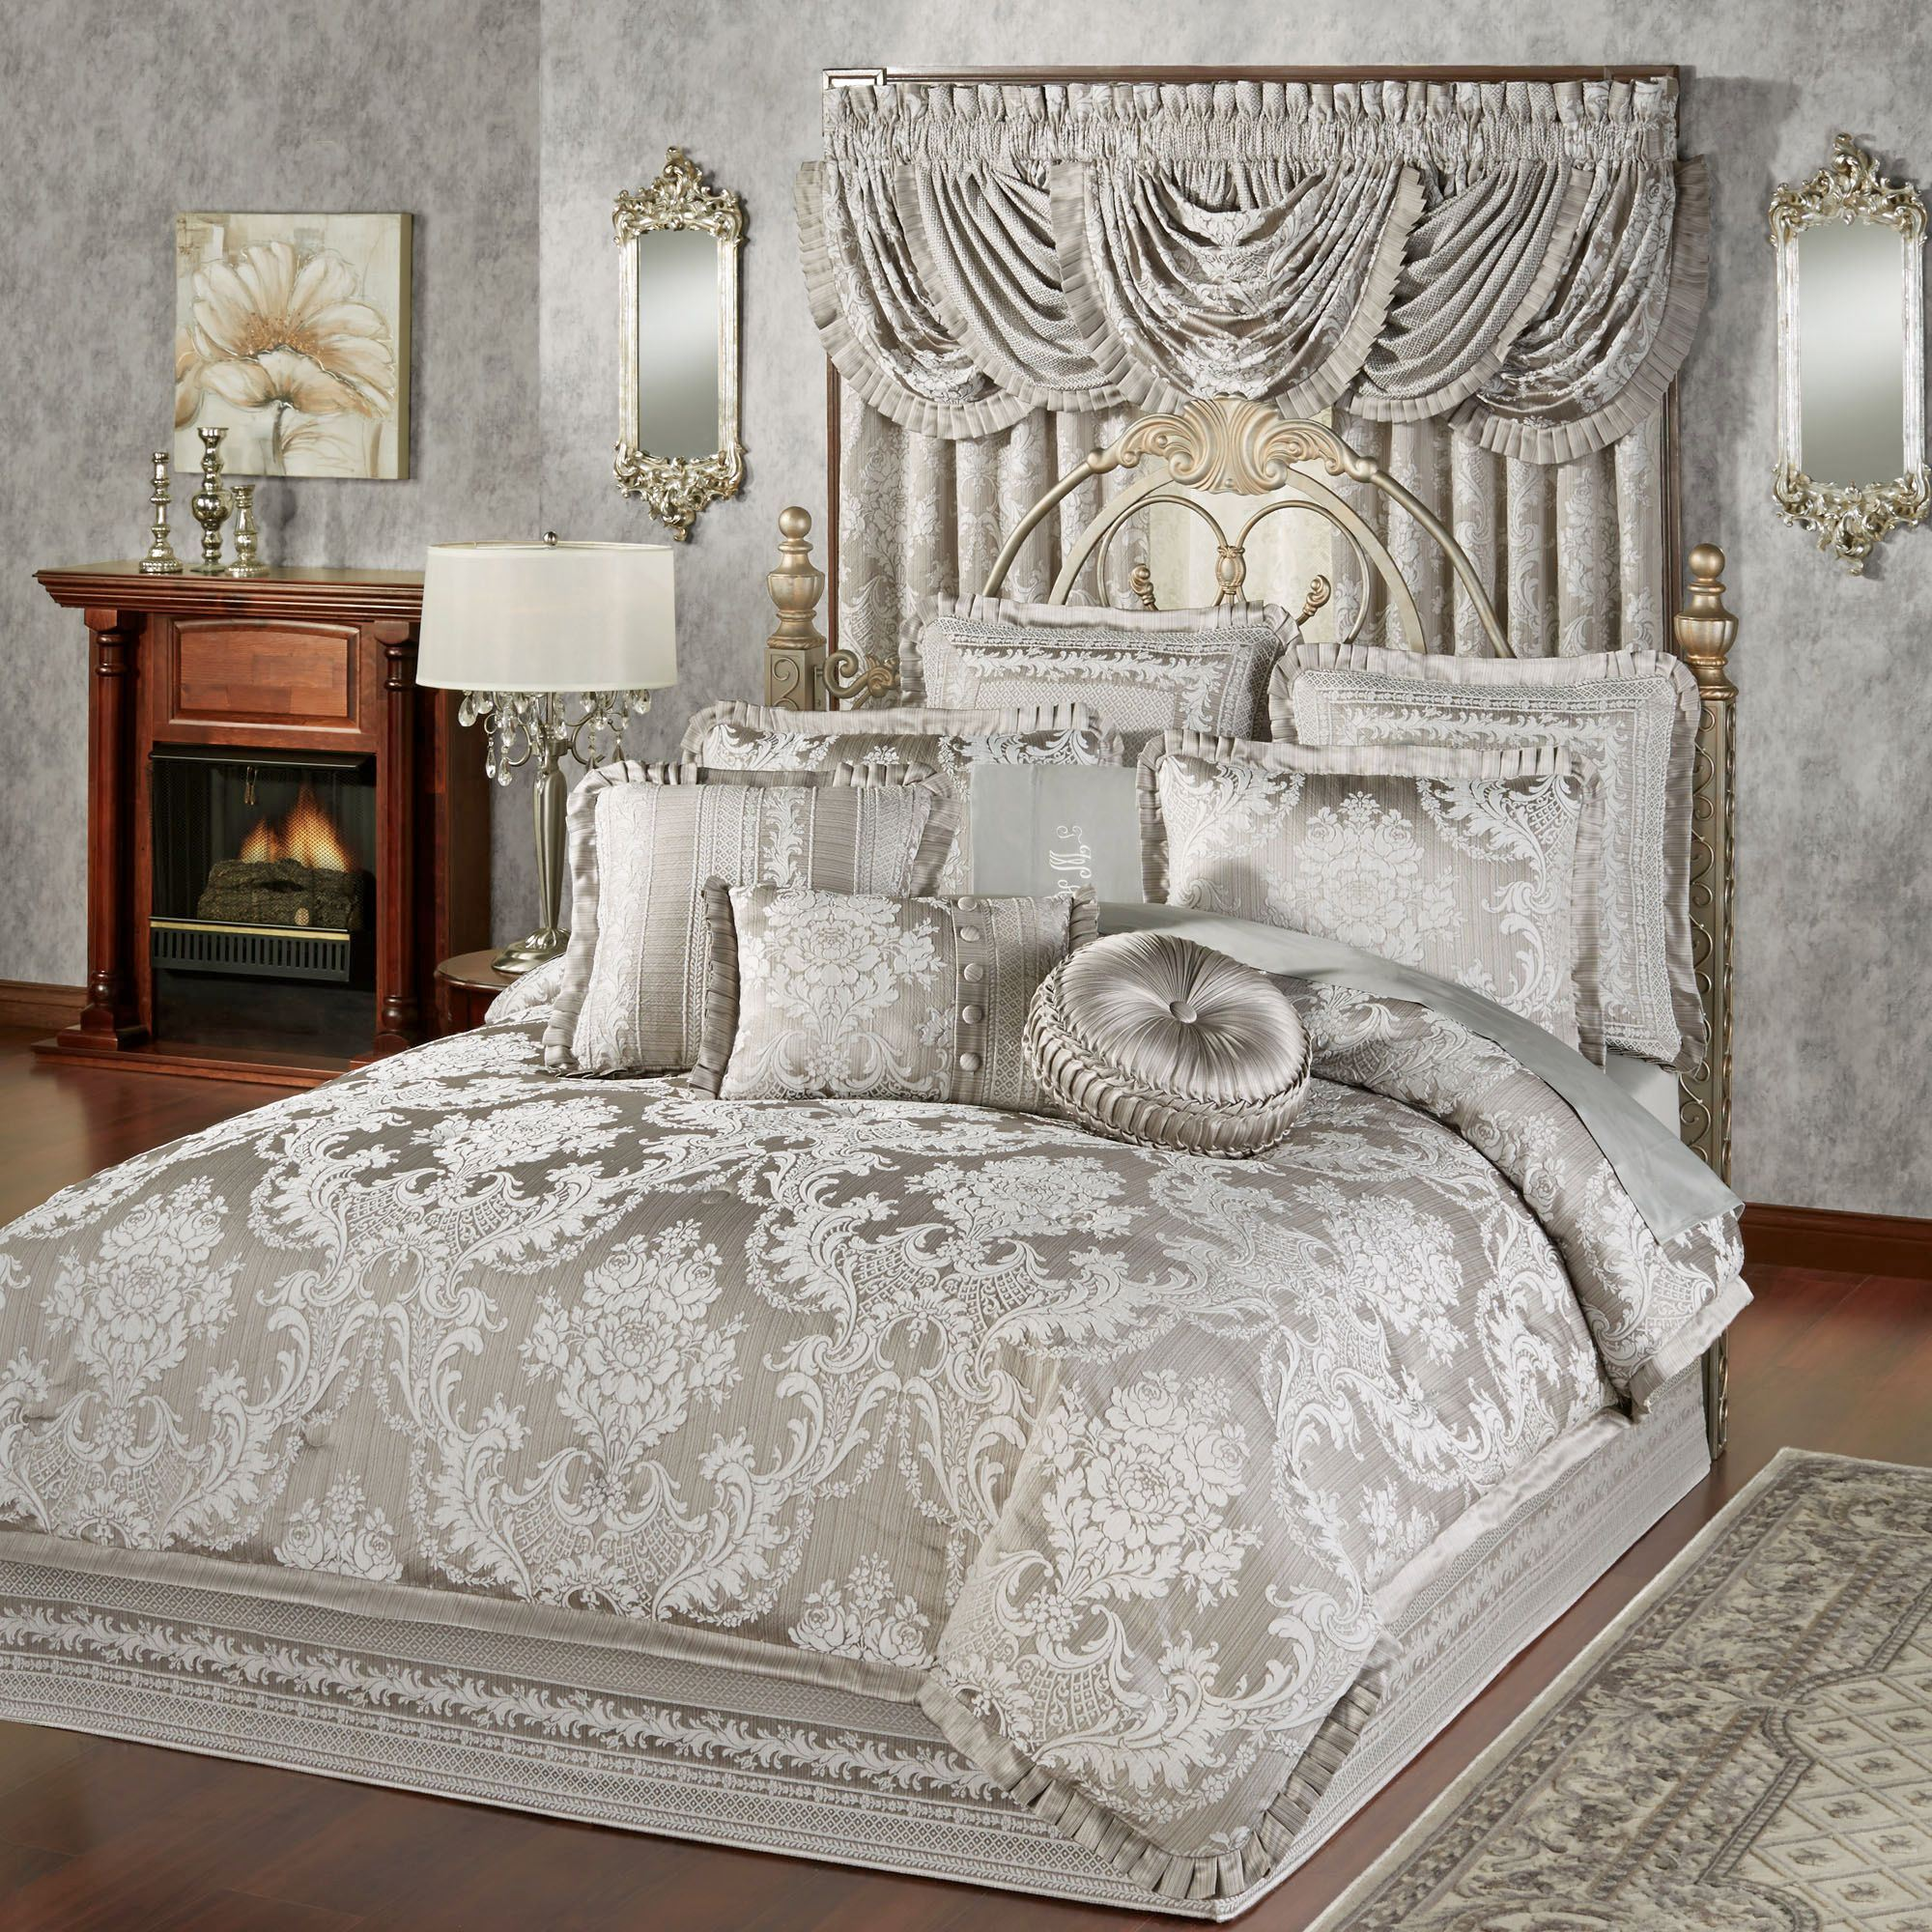 Luxury Comforter Sets | Ruffle Bedspread | Grey Ruffle Bedding